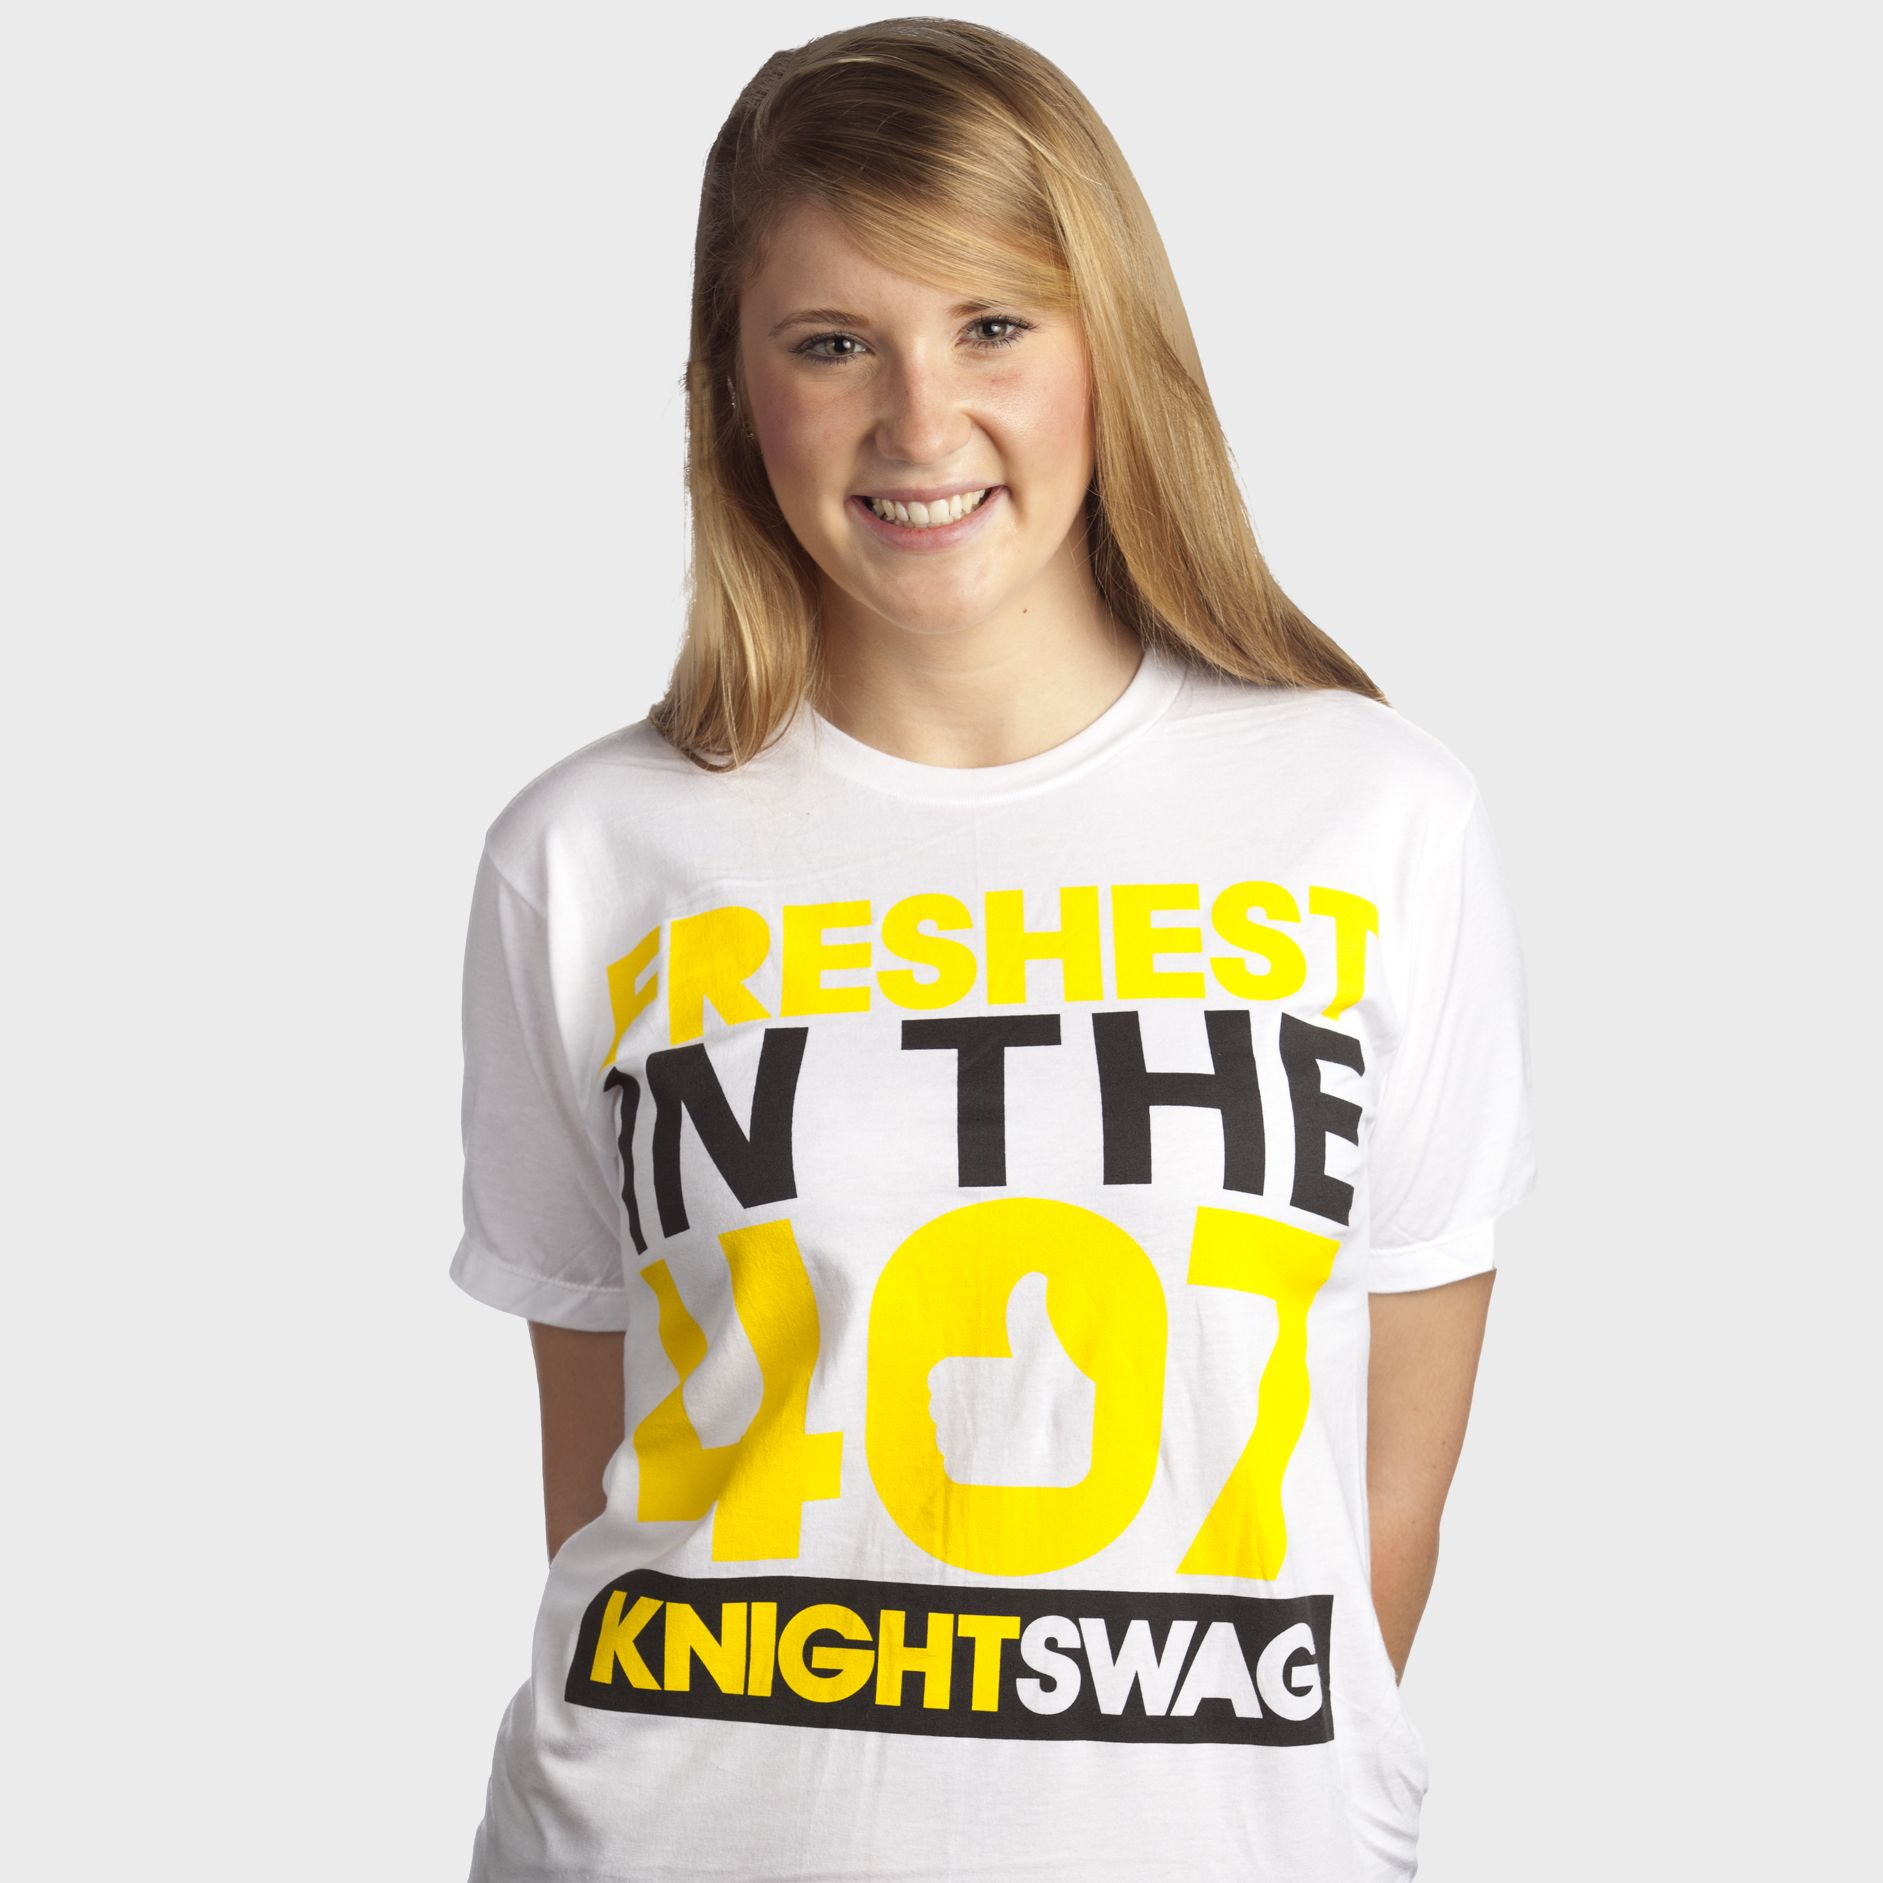 Freshest in the 407. KNIGHTSWAG UCF KNIGHTS